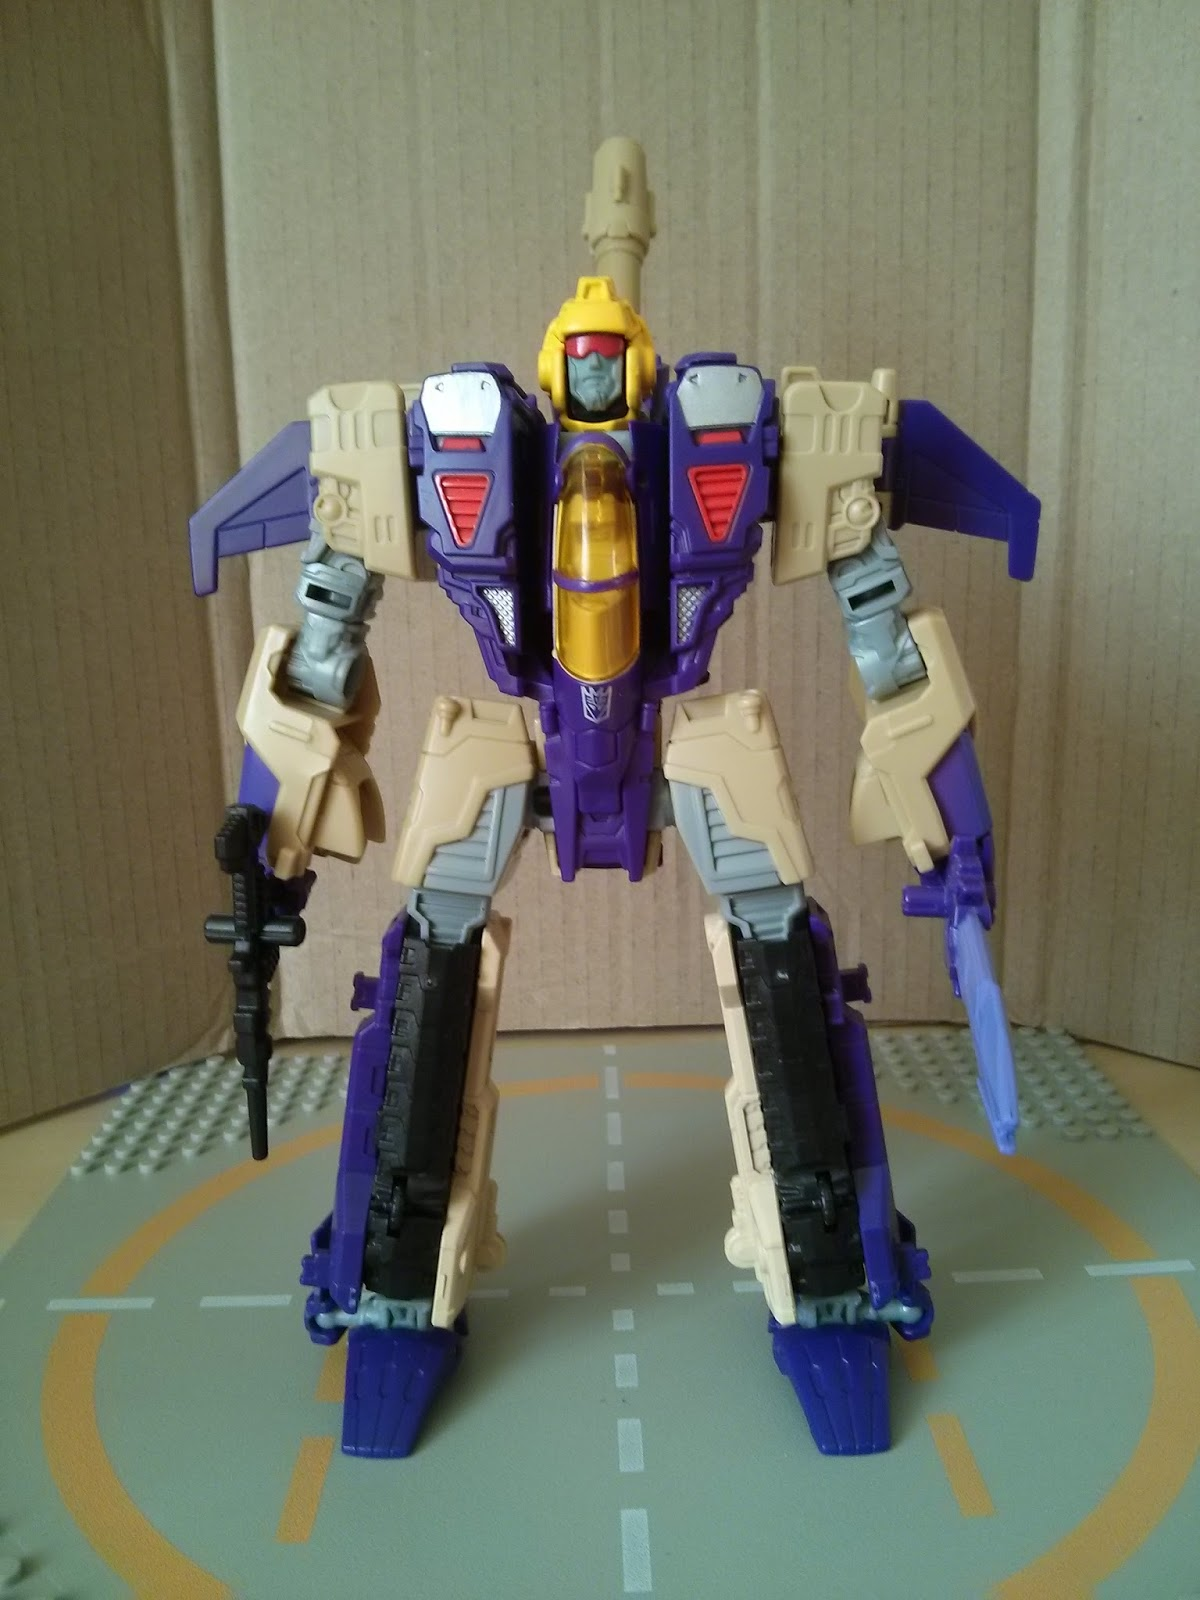 Toybox Soapbox: Transformers Generations Blitzwing Review